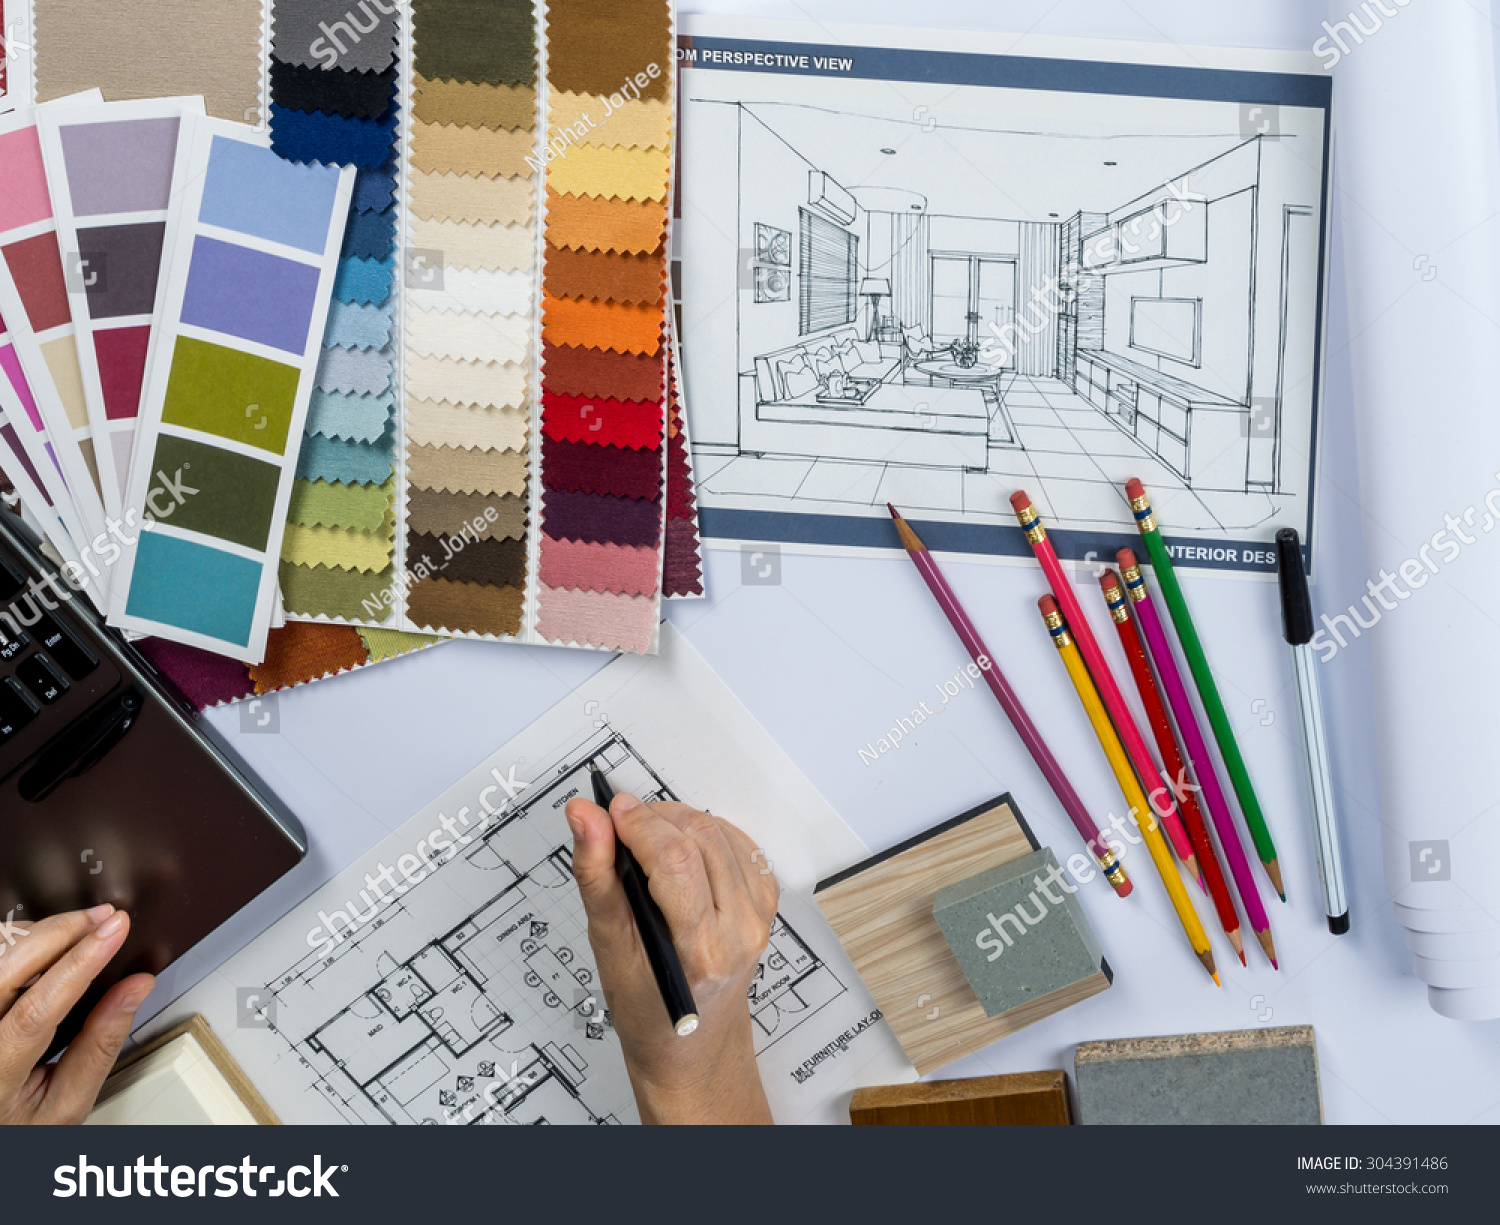 Top view of architects hands drawing of modern house with material sample on creative desk #304391486